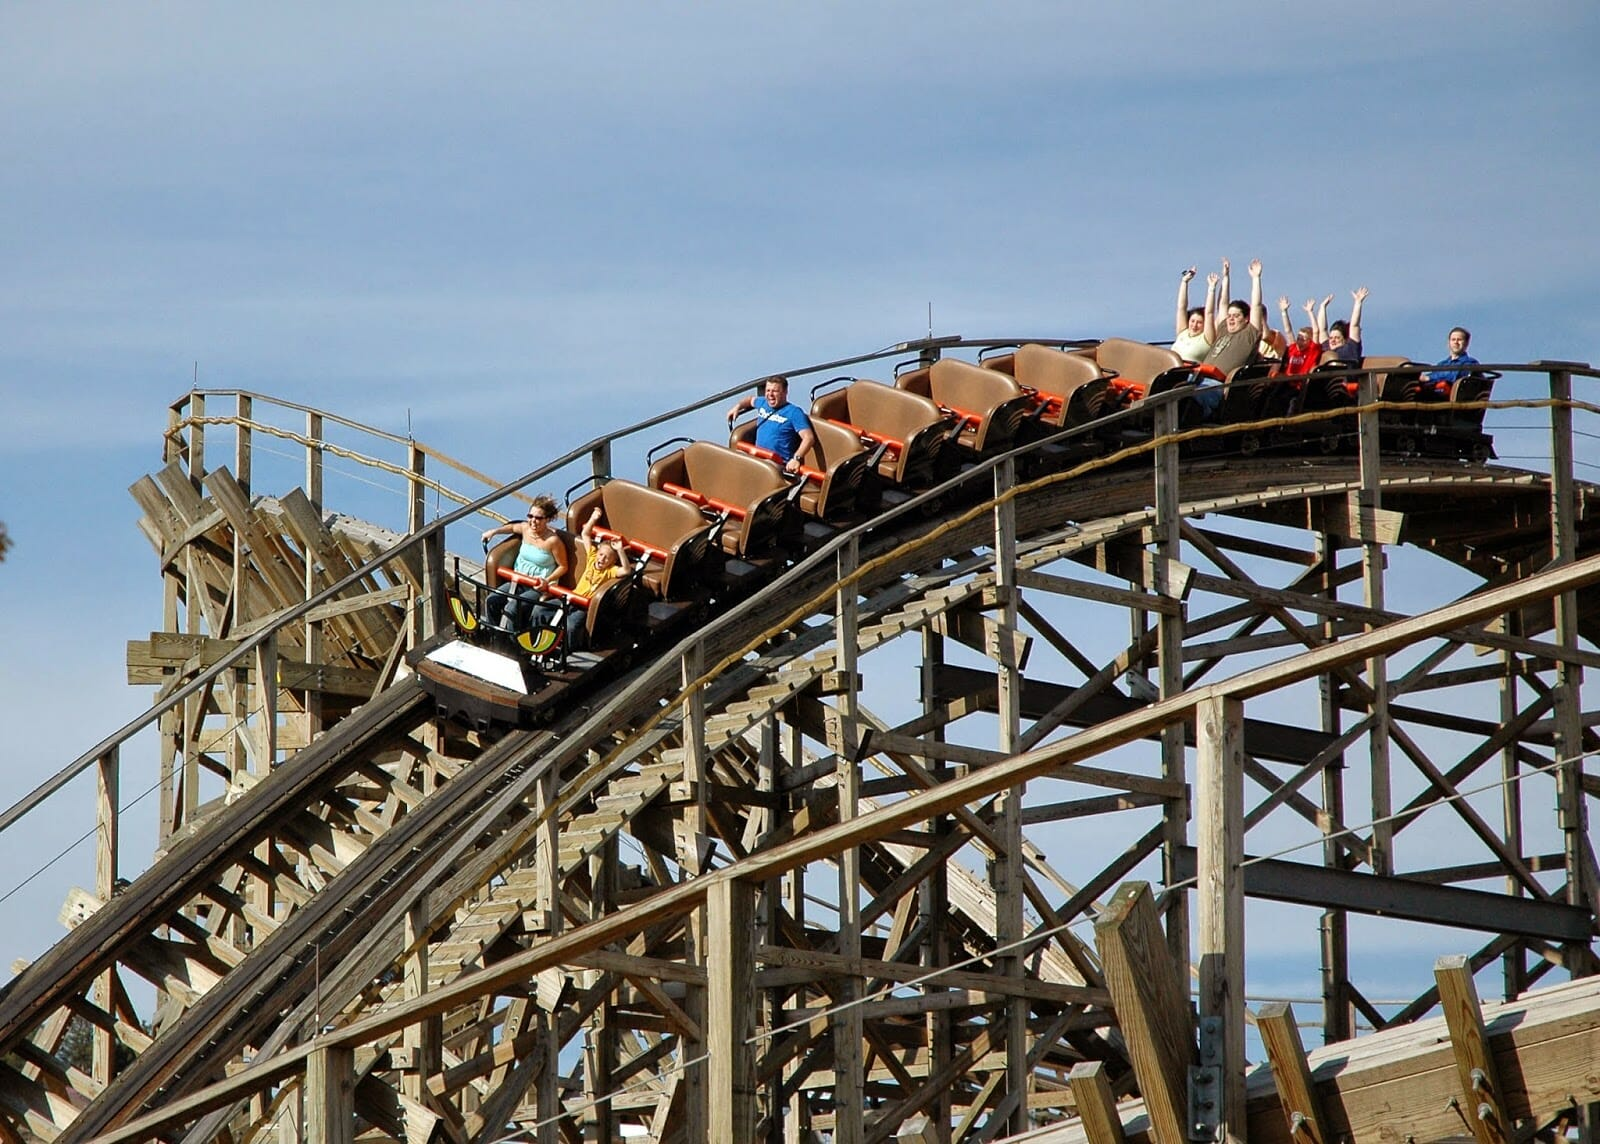 ozark wildcat coaster